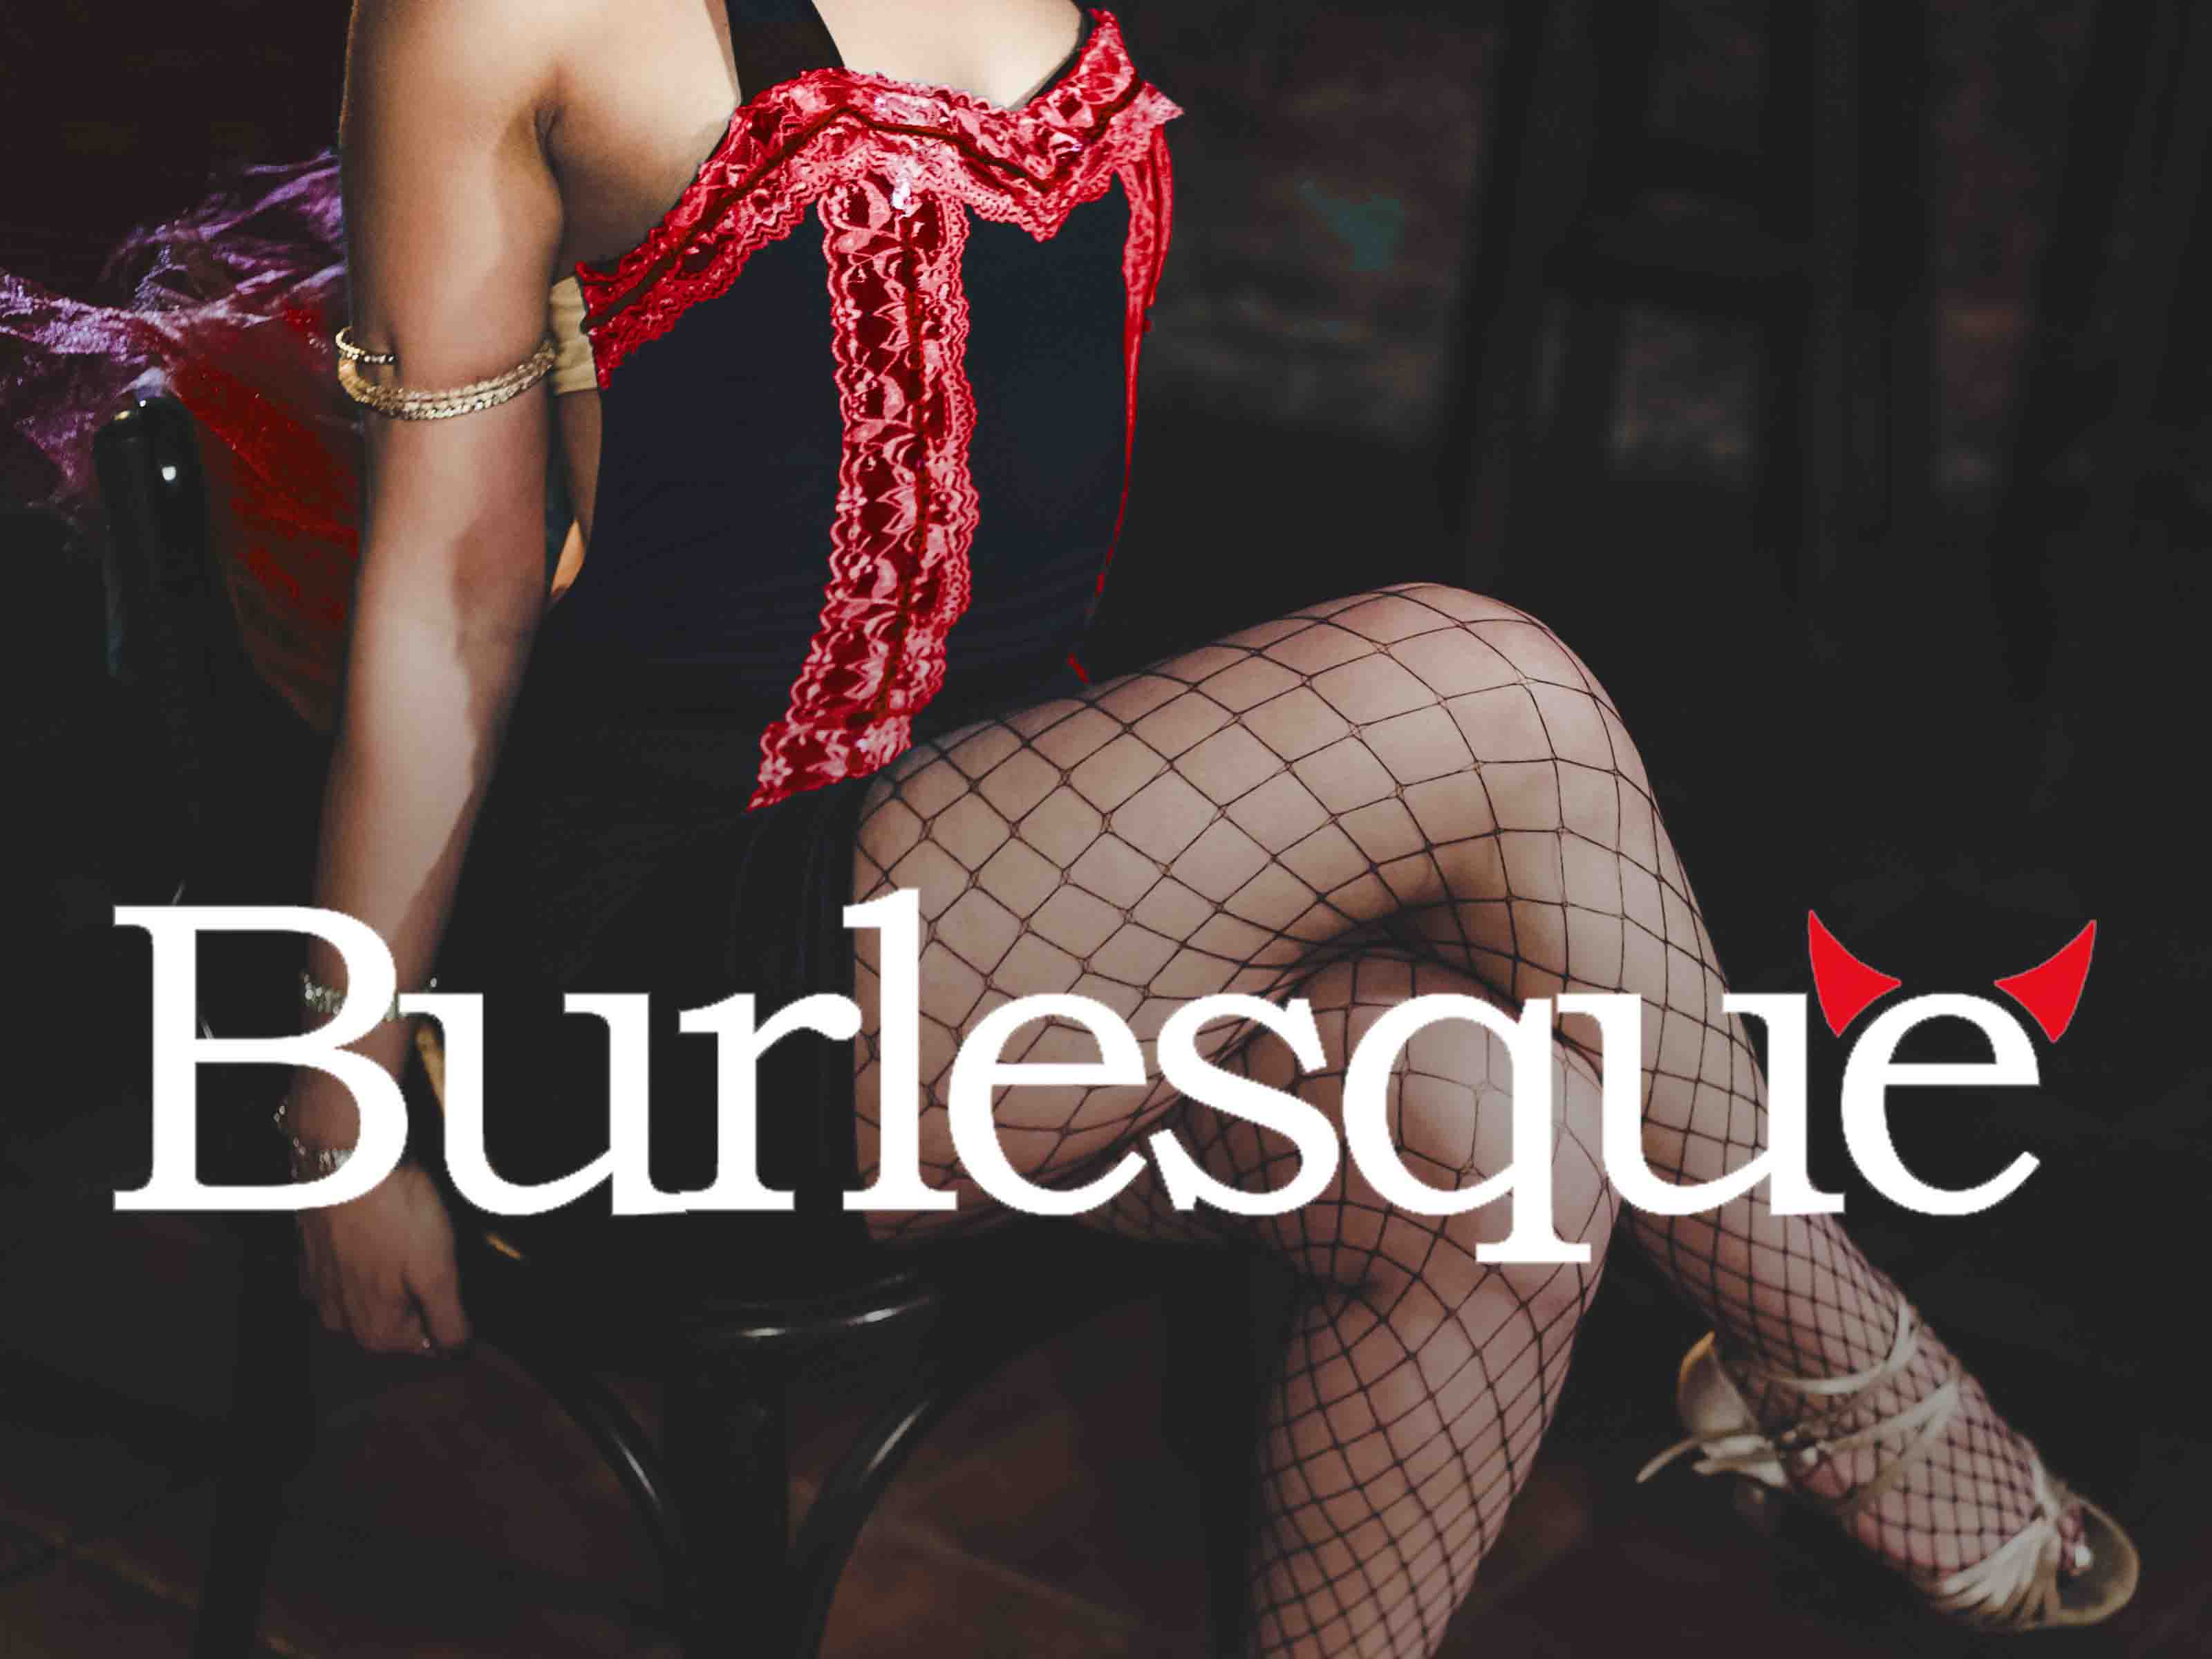 Hen Party Themes - Burlesque